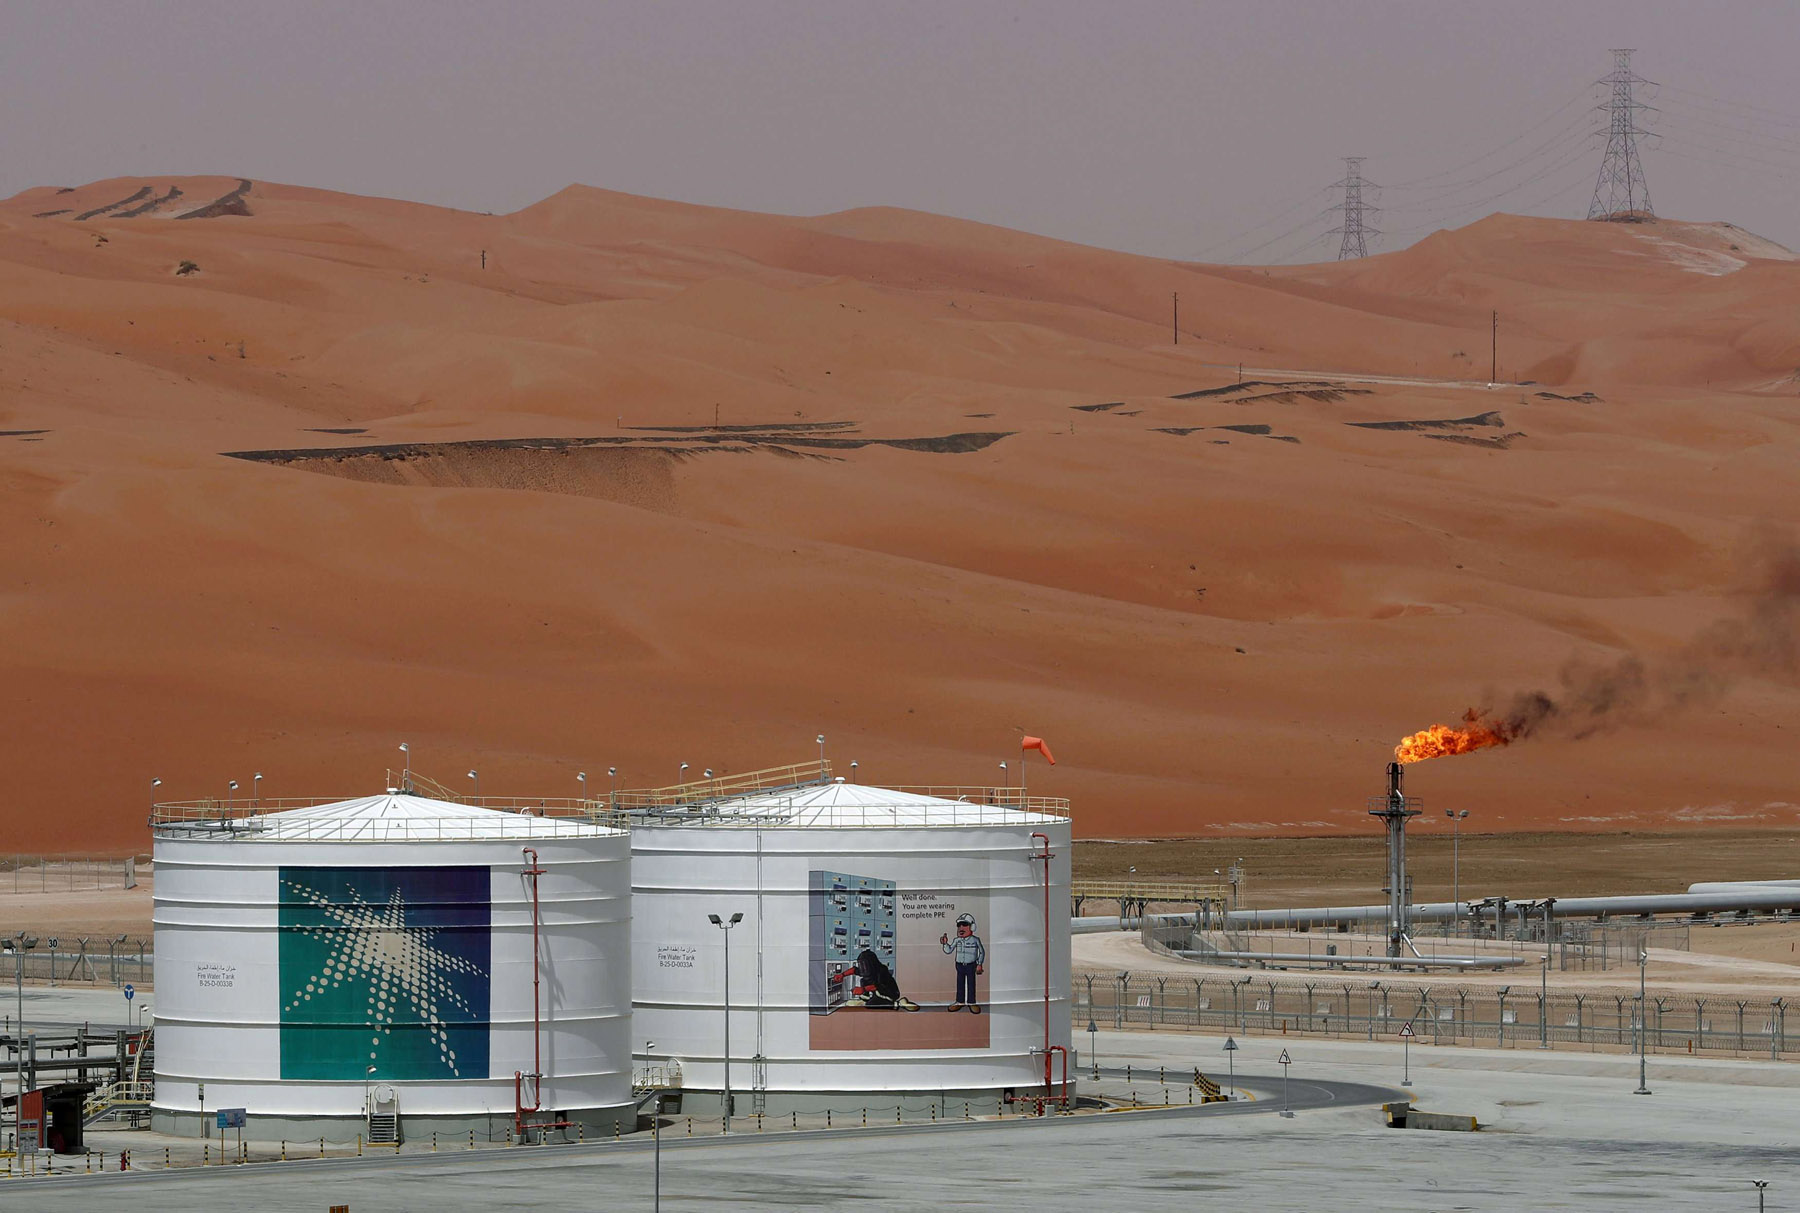 A view of the production facility at Saudi Aramco's Shaybah oilfield in the Empty Quarter. (Reuters)